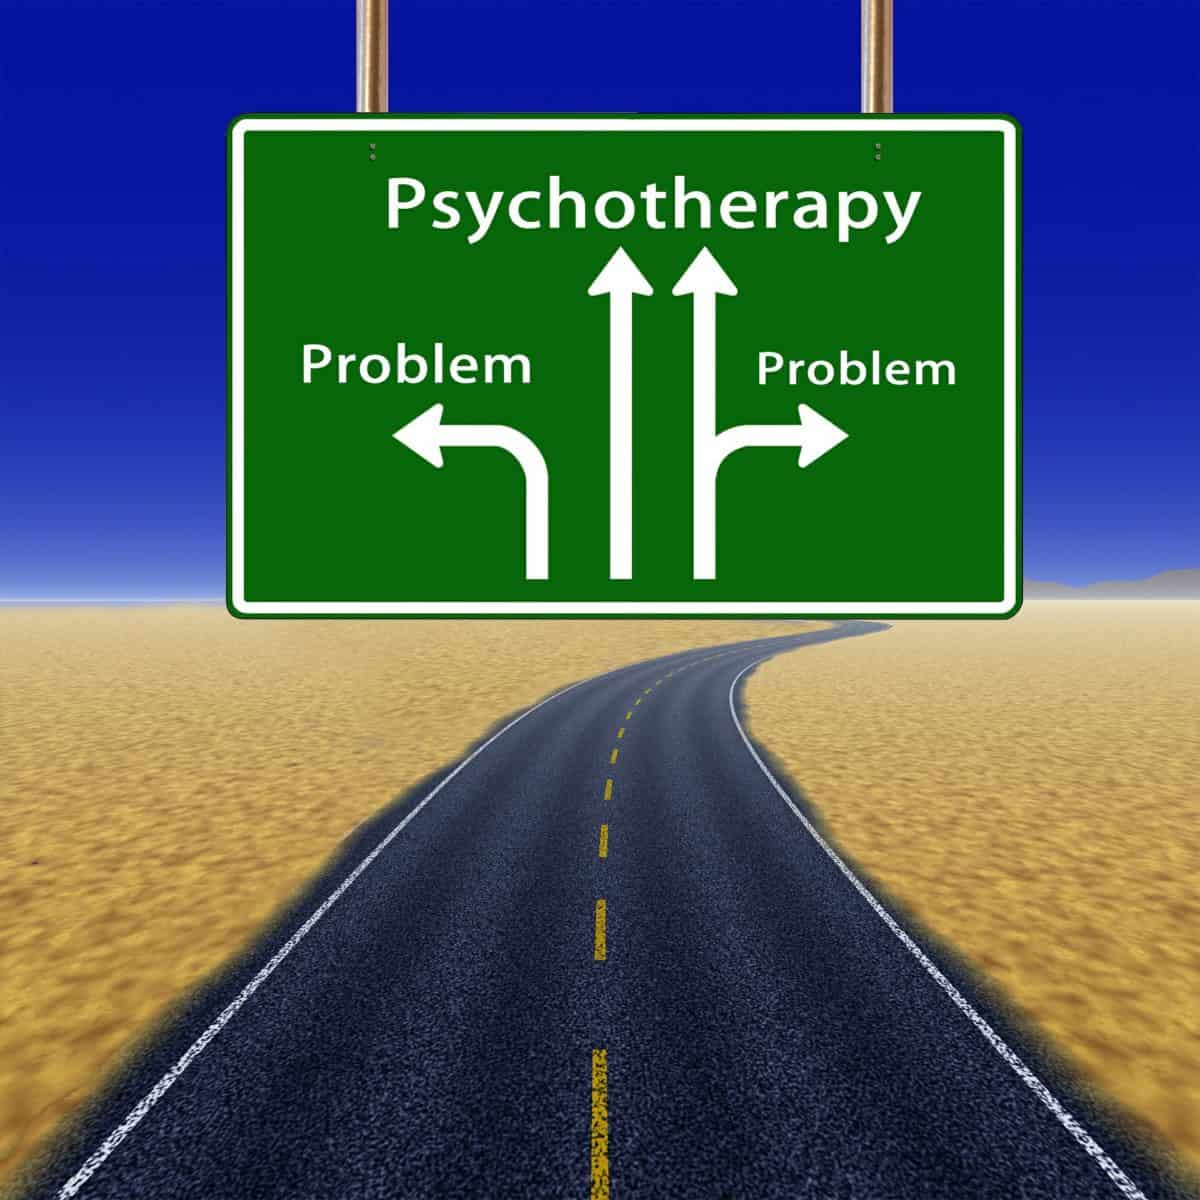 Psychotherapy Counselling Issues Worry Stress Anxiety Depressing Self-Esteem Happiness Path Journey Talk Therapy Help Infertility Bereavement Work Life Struggle